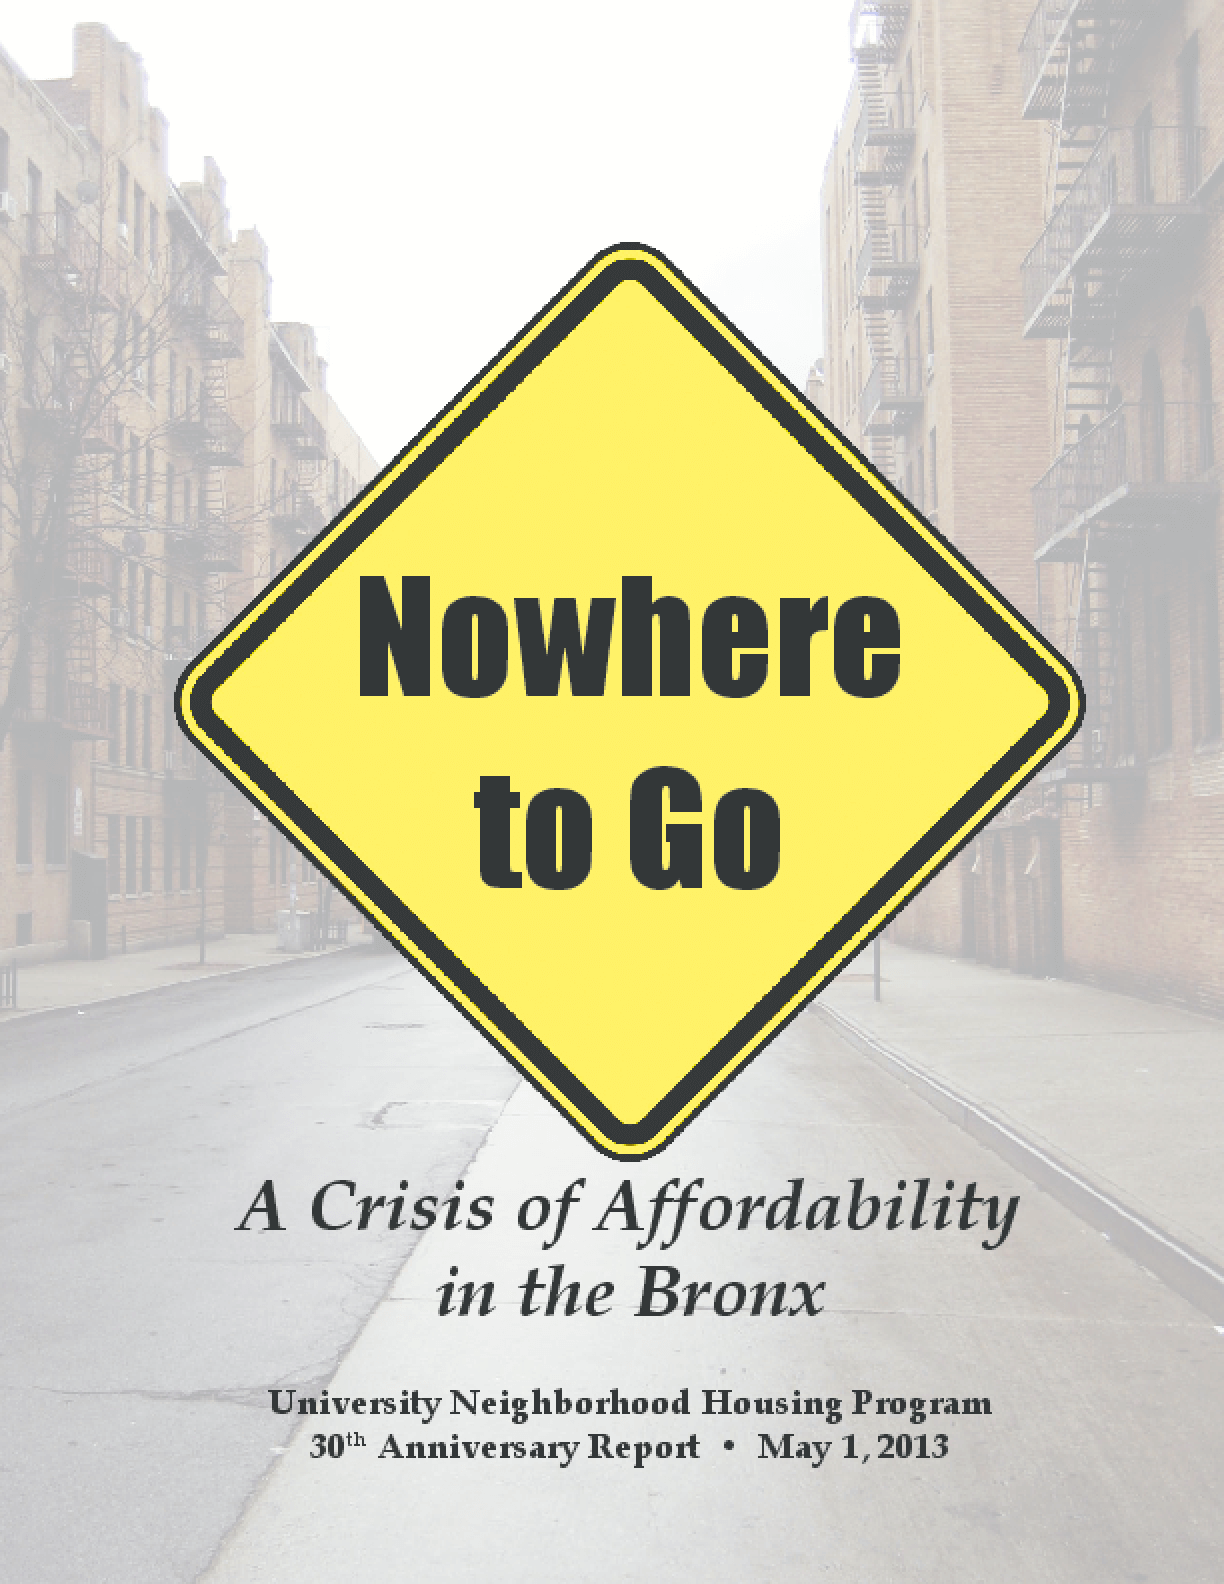 Nowhere to Go: A Crisis of Affordability in the Bronx